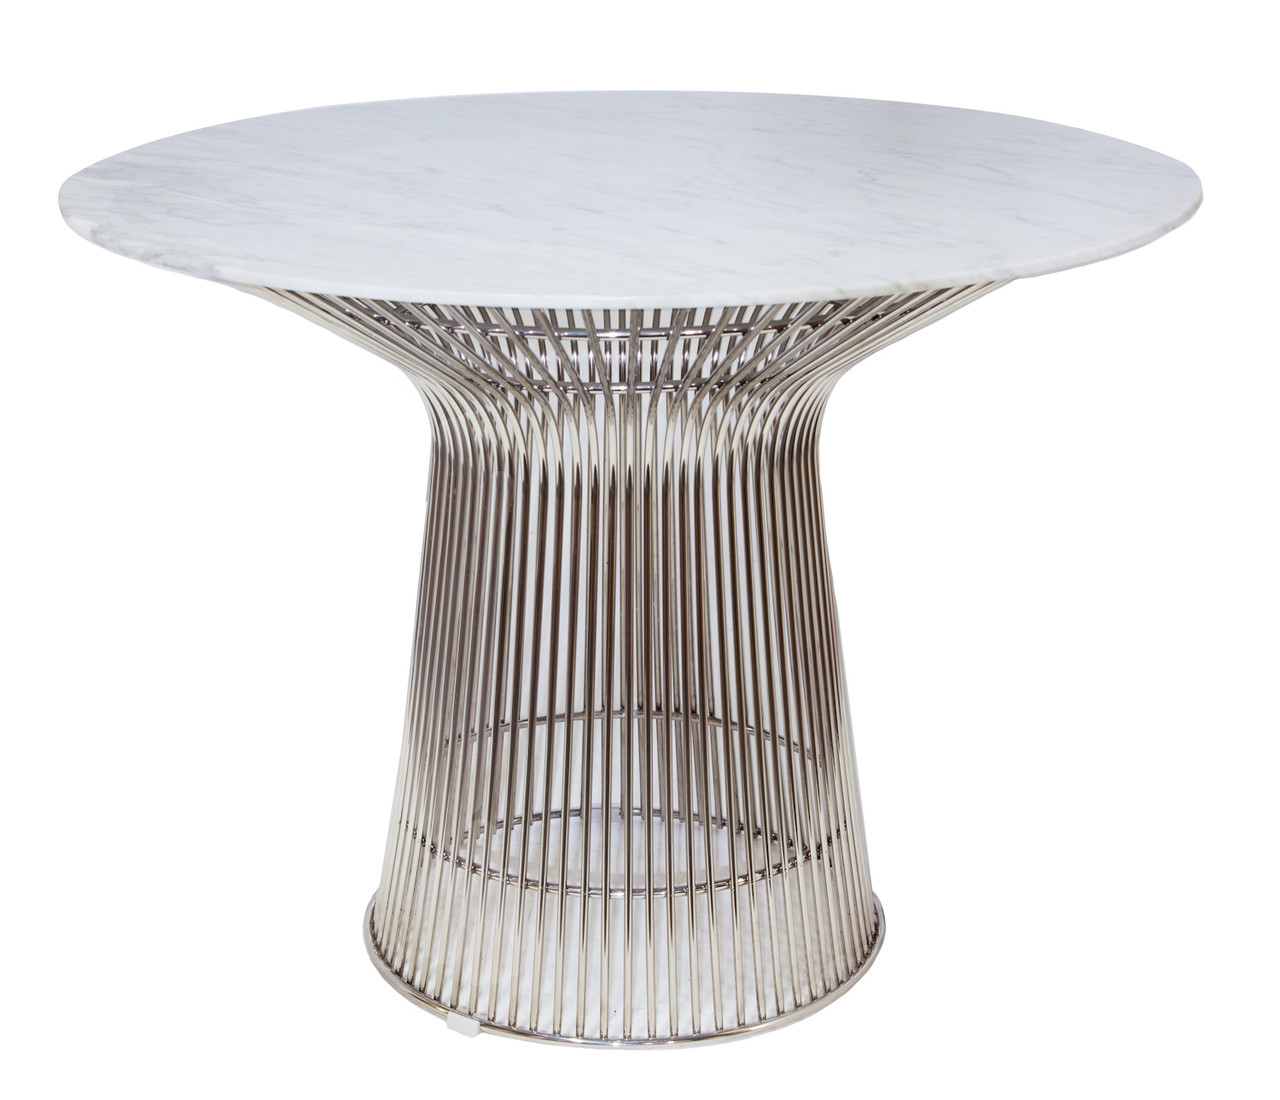 Replica Warren Platner - Wire Dining Table - Stainless Steel - Marble Top - 100cm